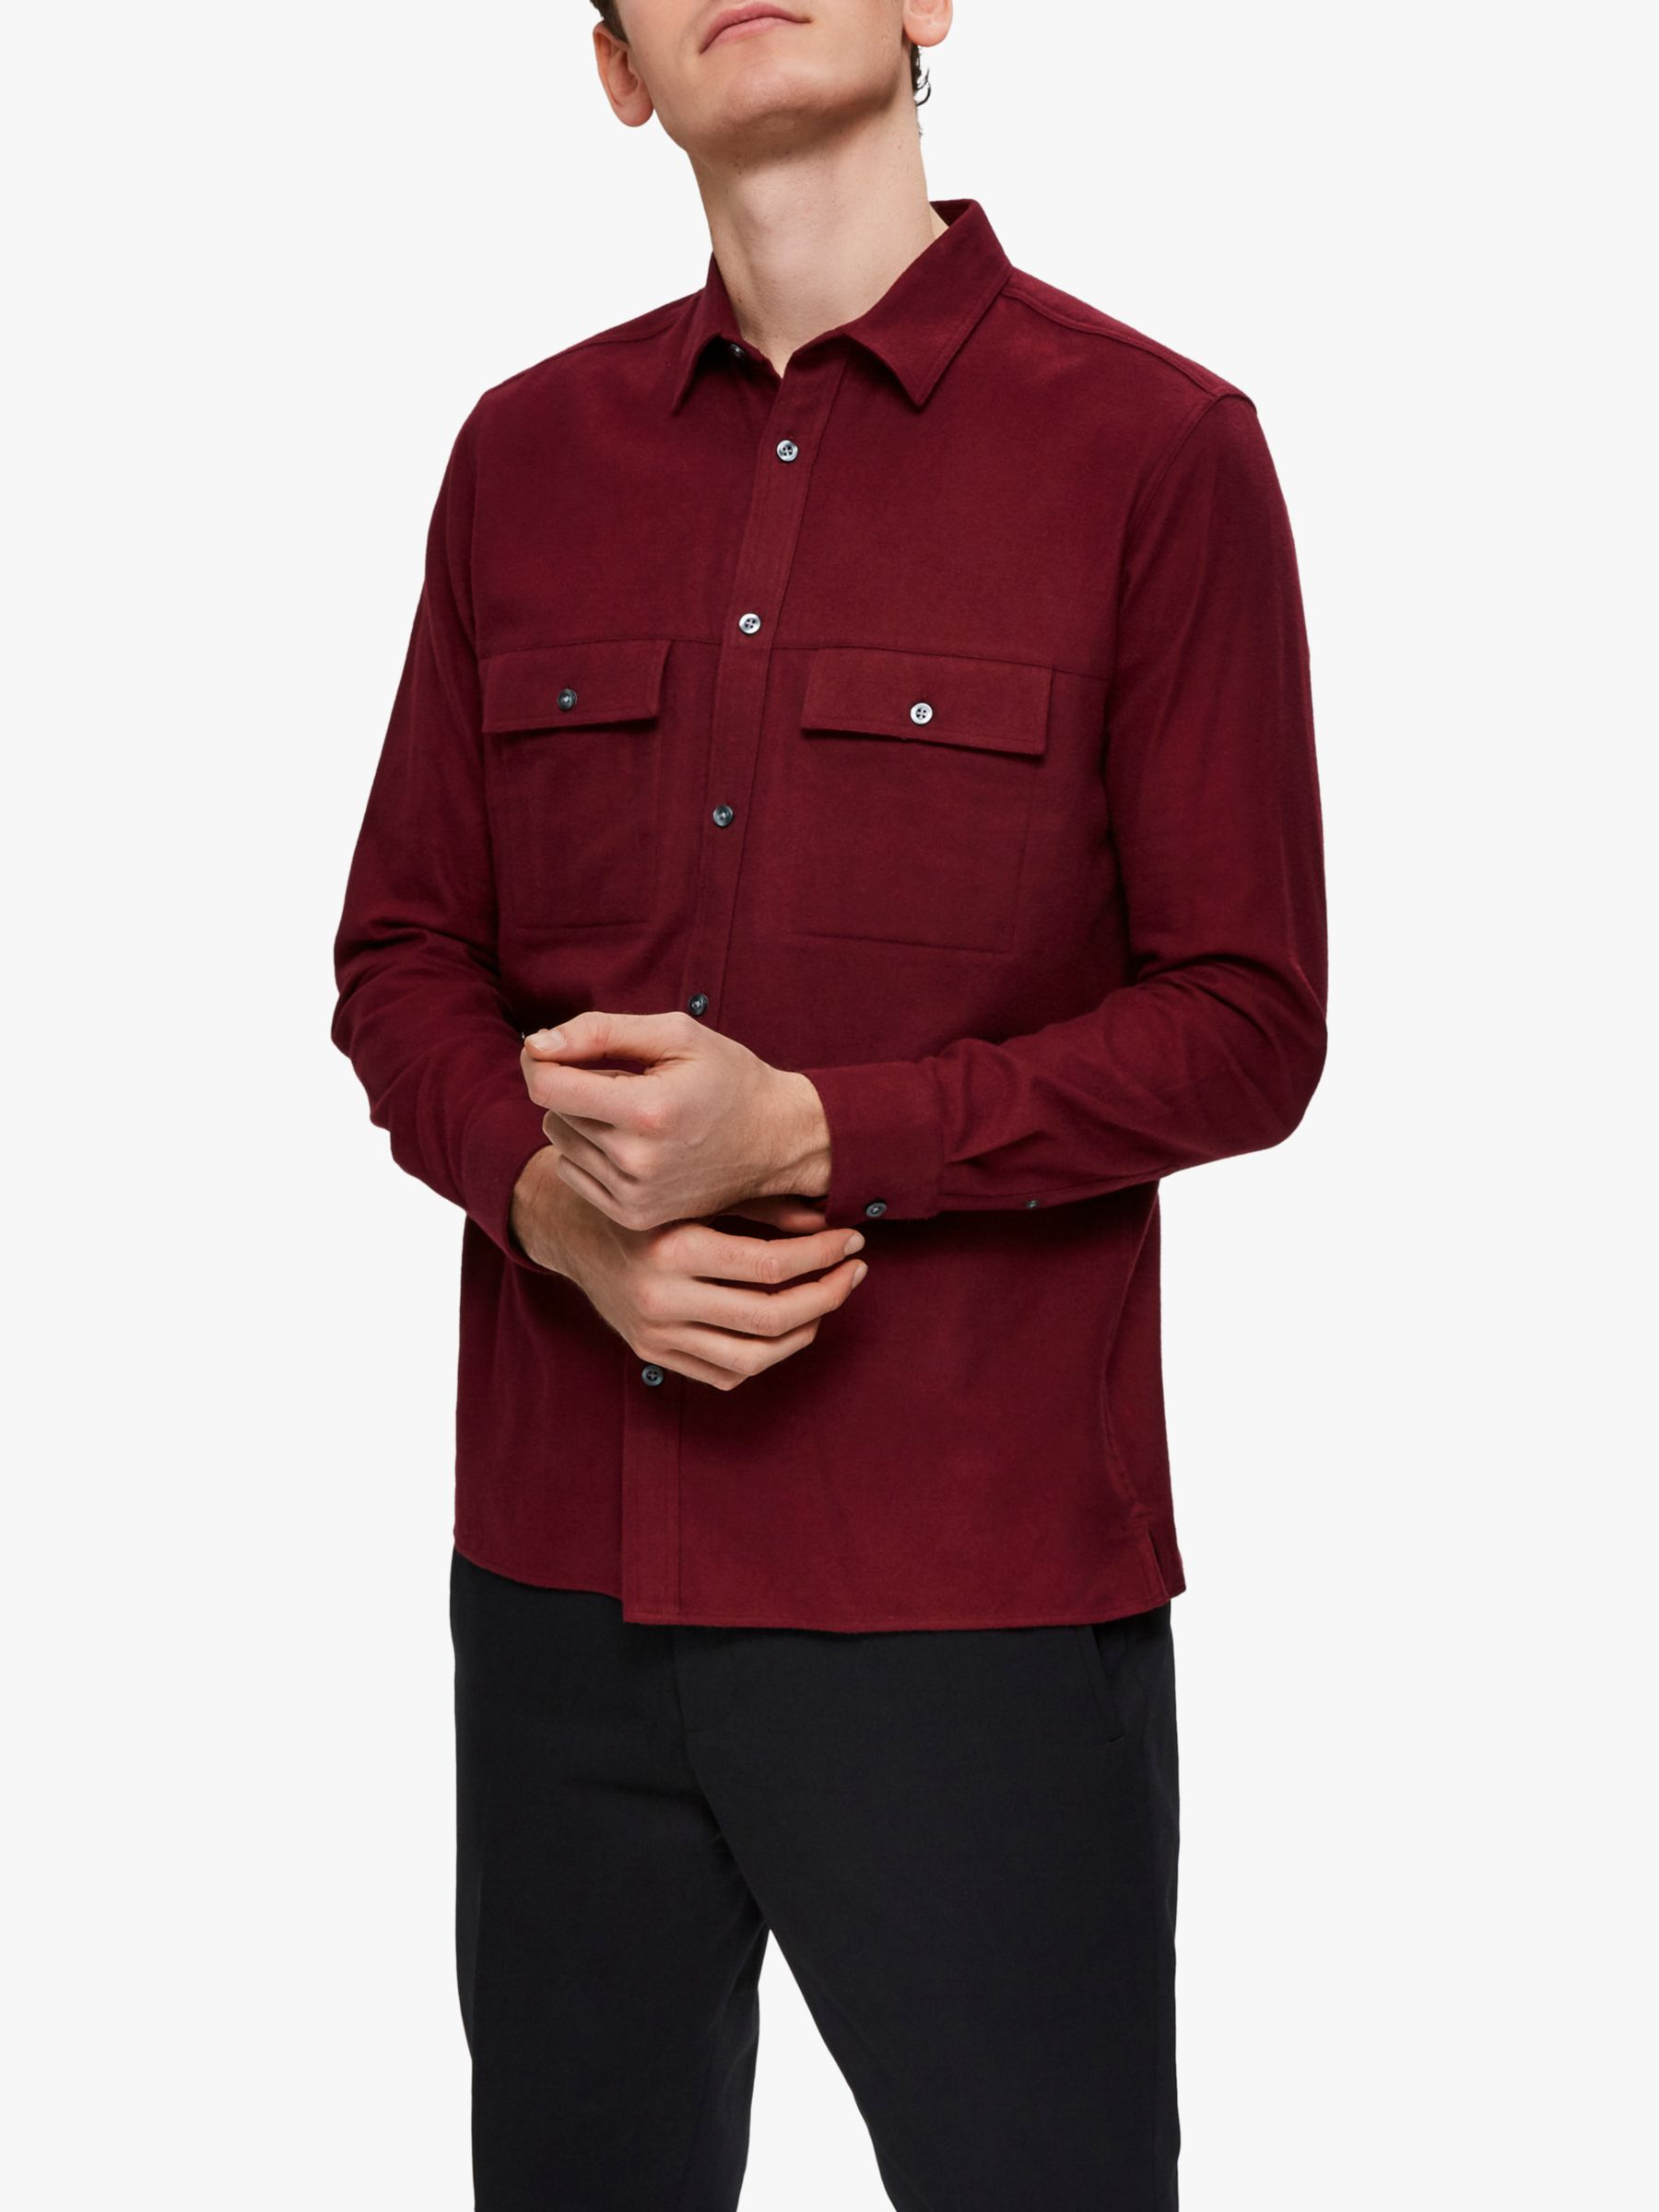 Selected Homme SELECTED HOMME Cotton Flannel Shirt, Burgundy